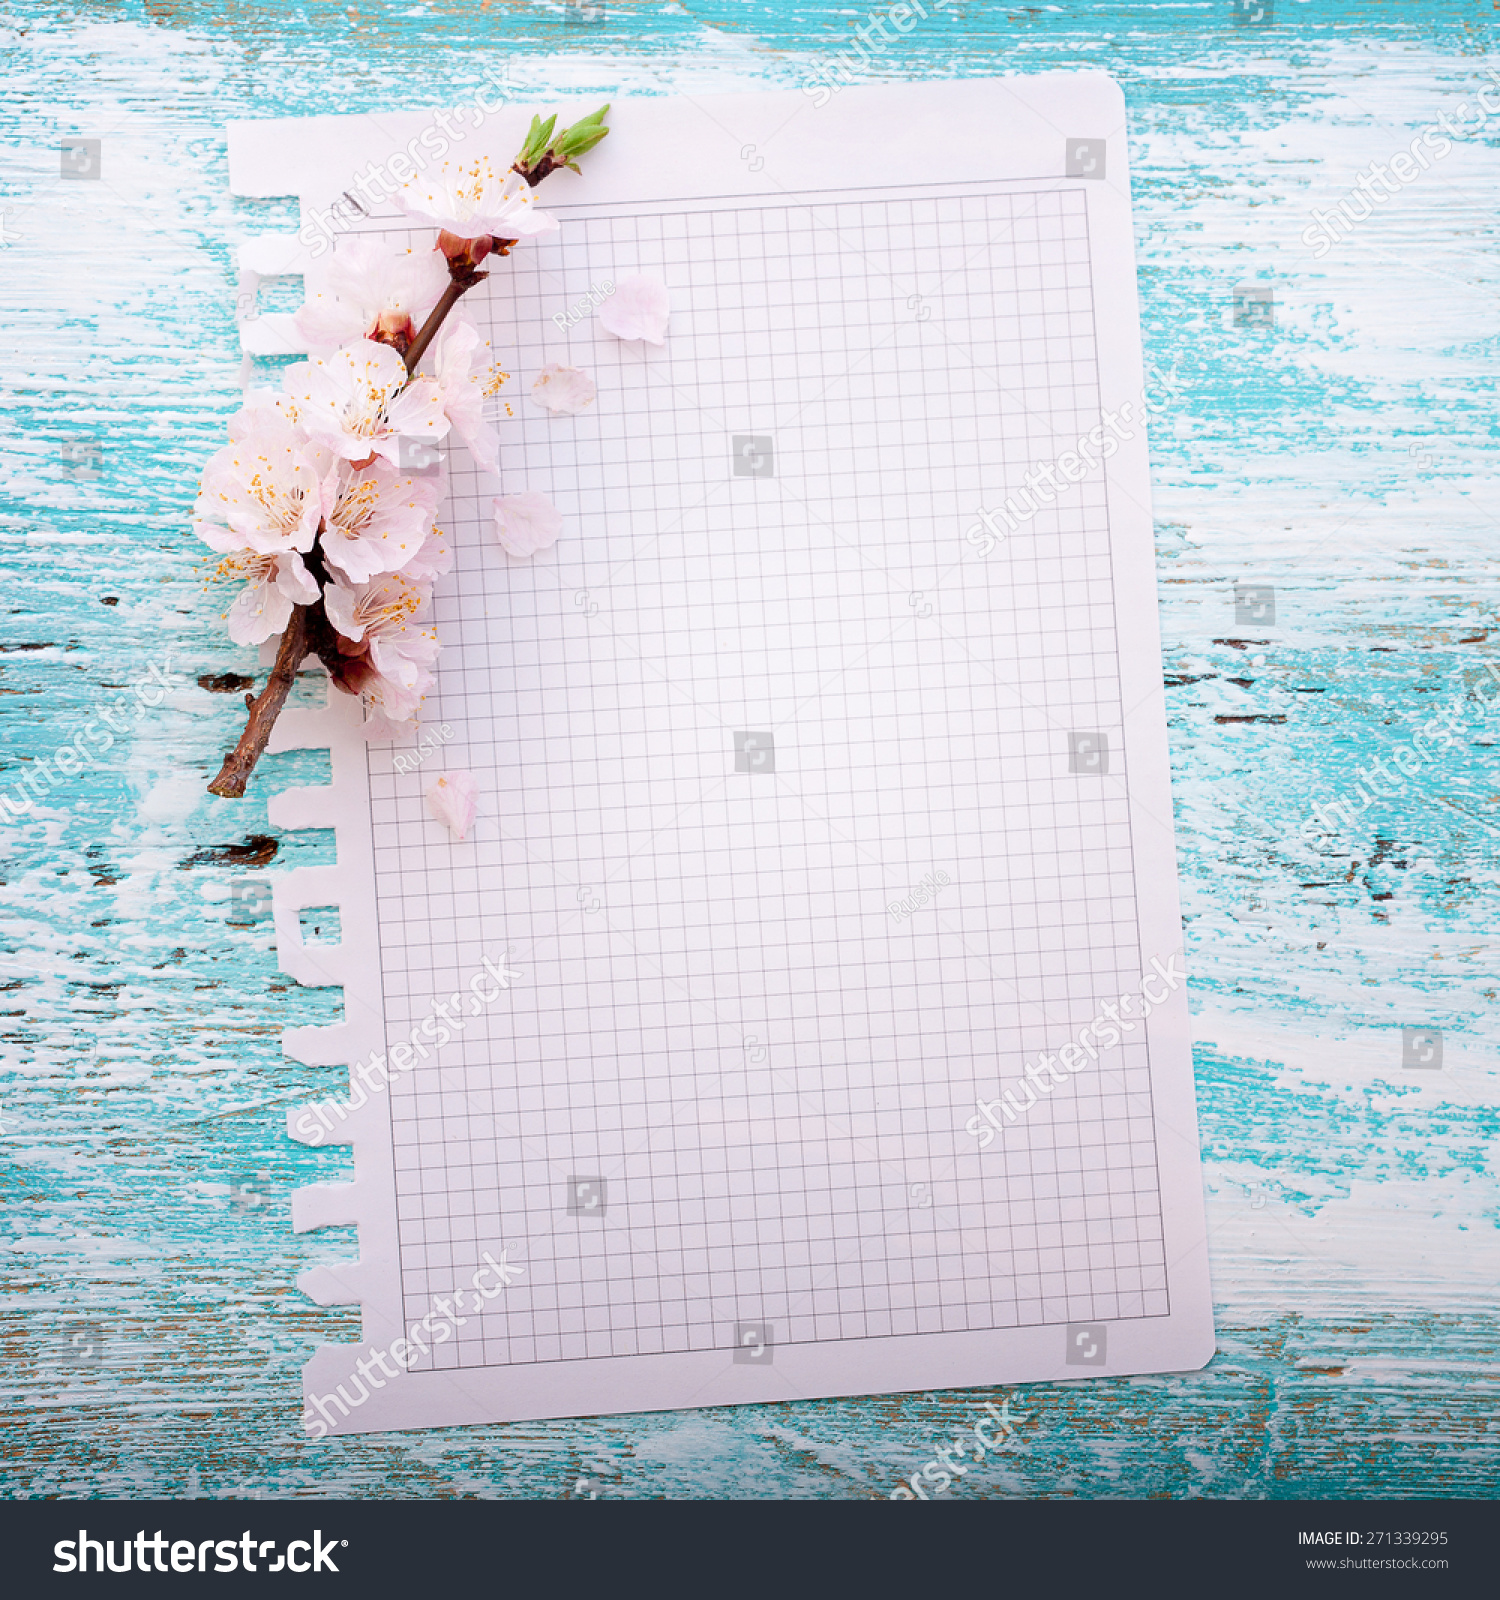 Flowering Branch On Paper Texture Japanese Stock Photo 271339295 ...